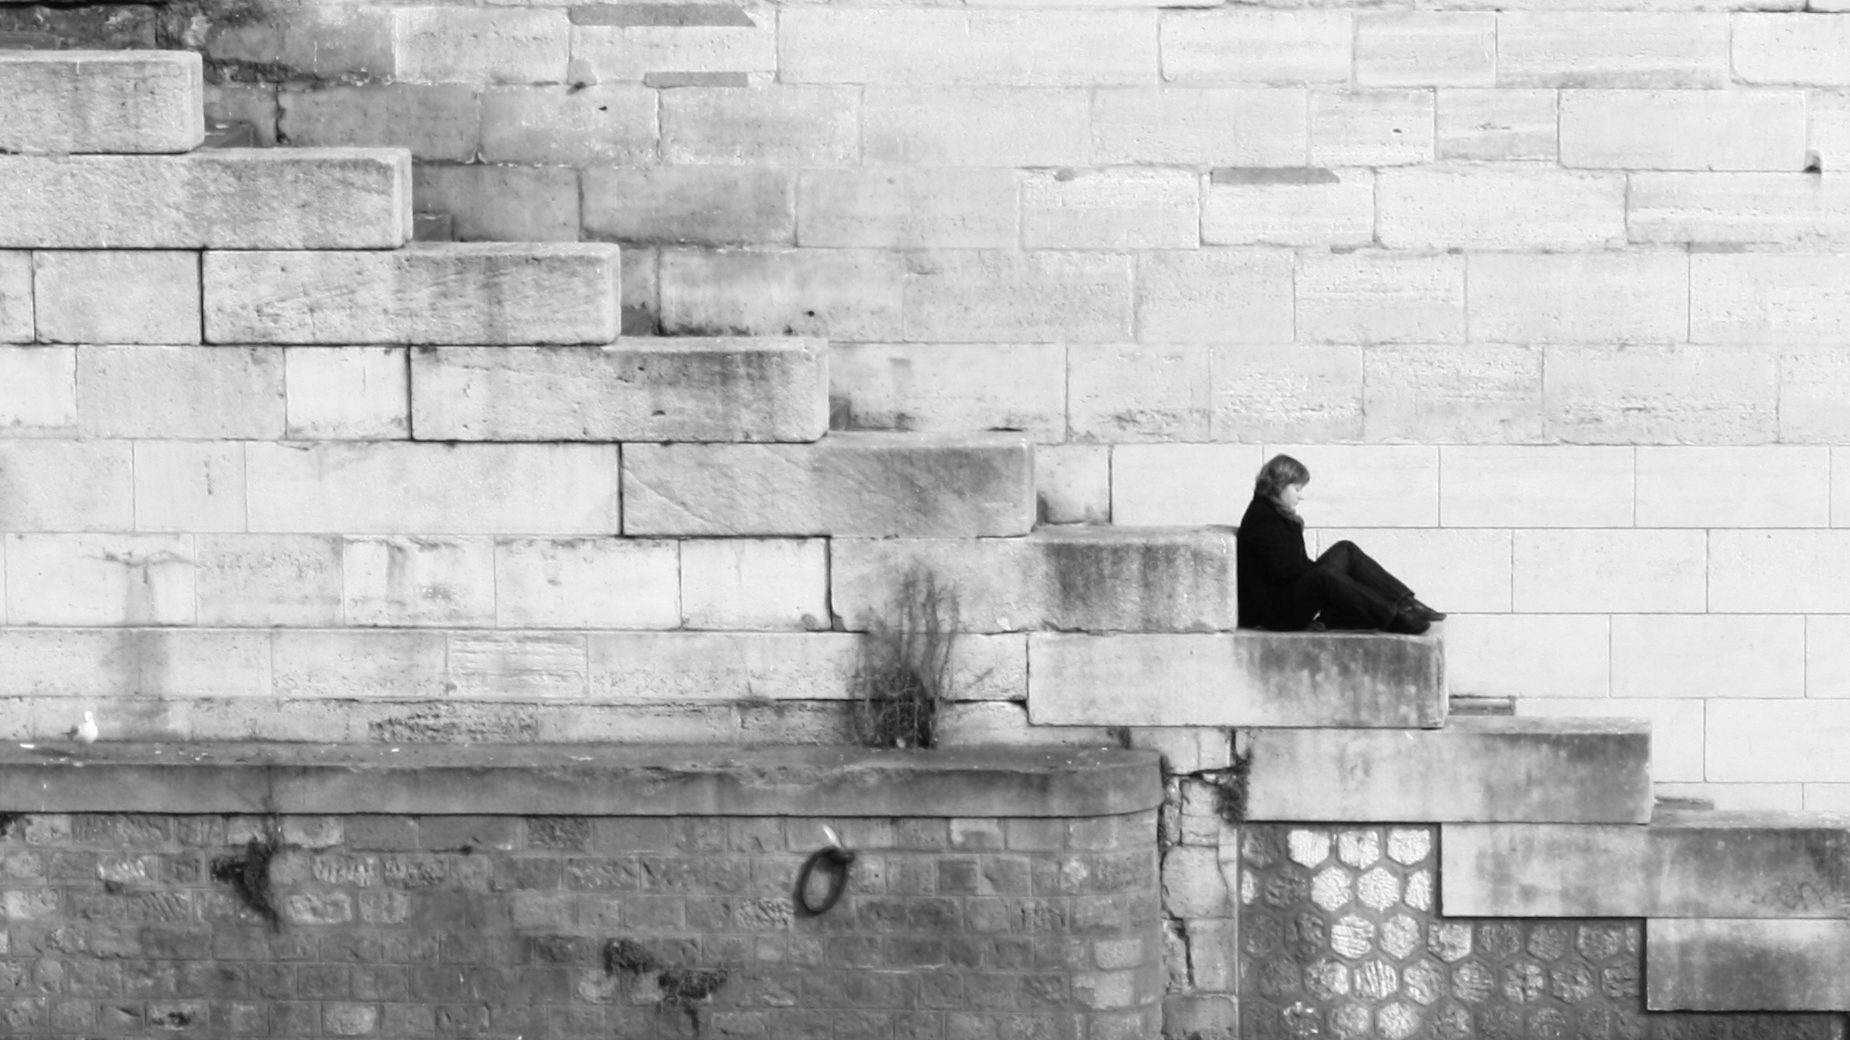 A woman sits on stairs by a river